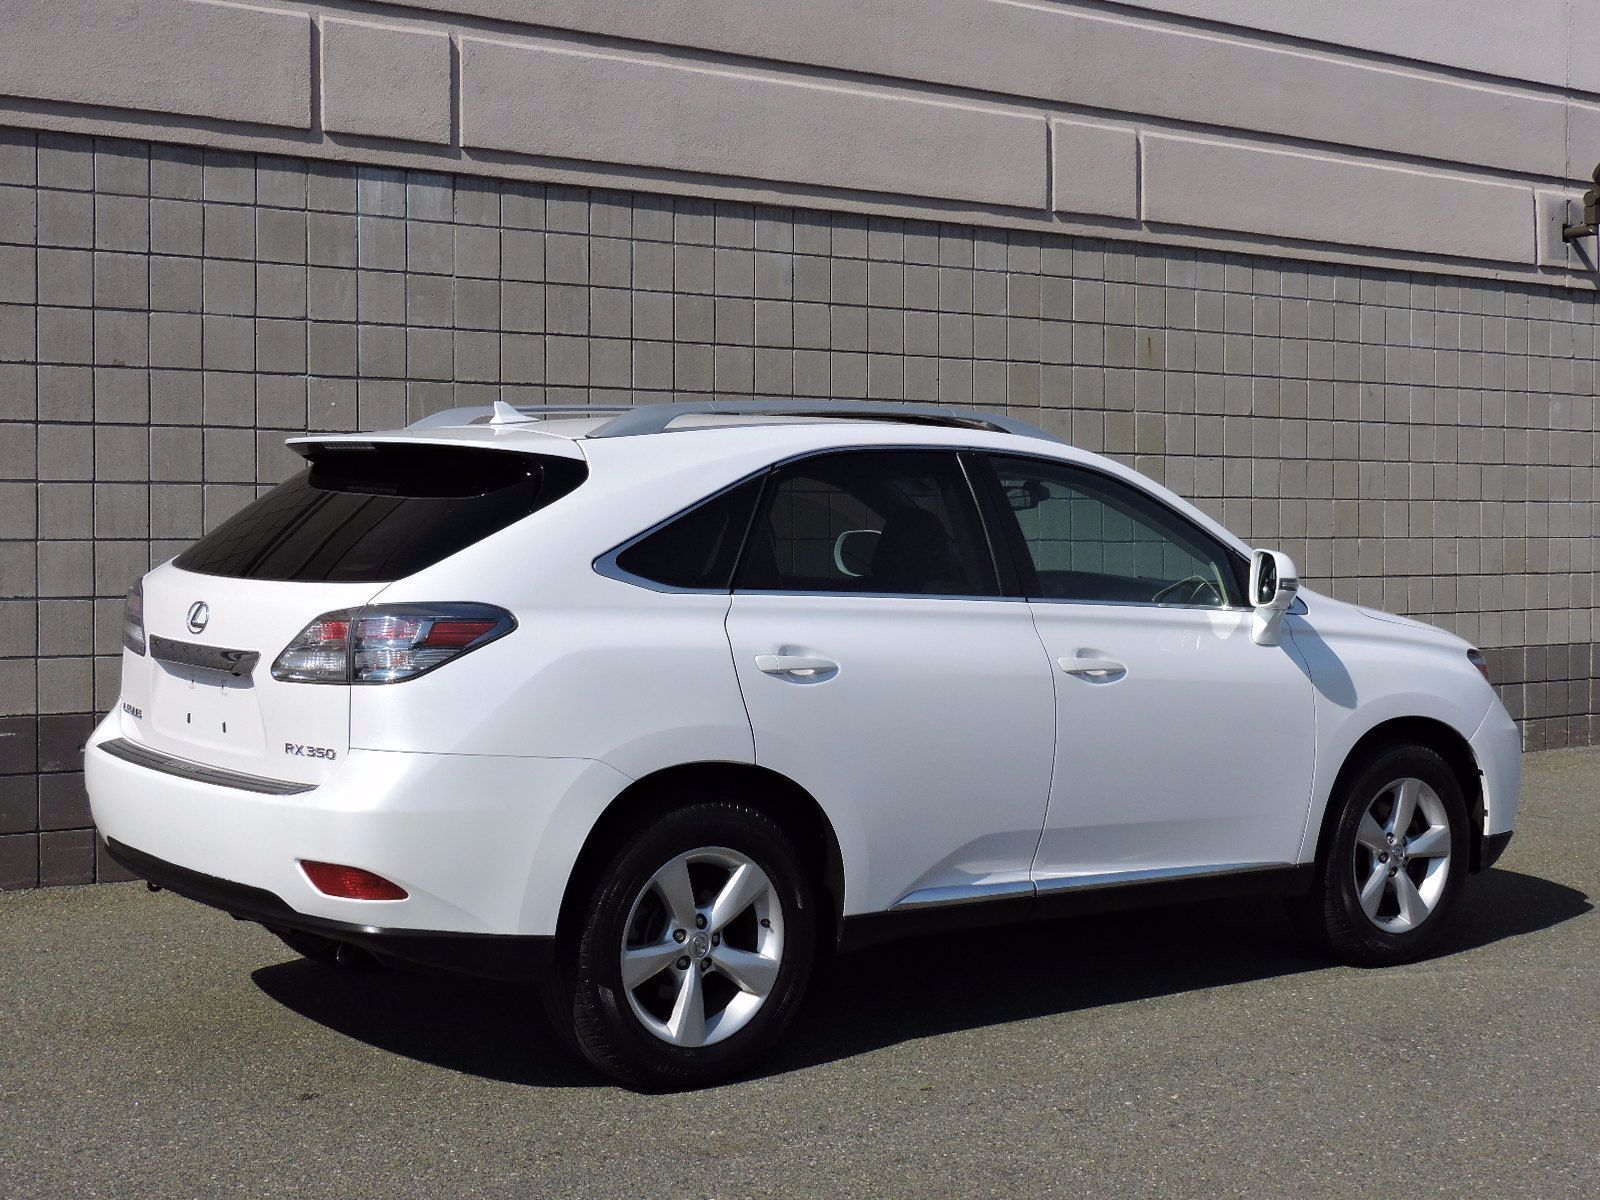 see suv rx full black ca to click awd photo for in escondido used lexus viewer size sale